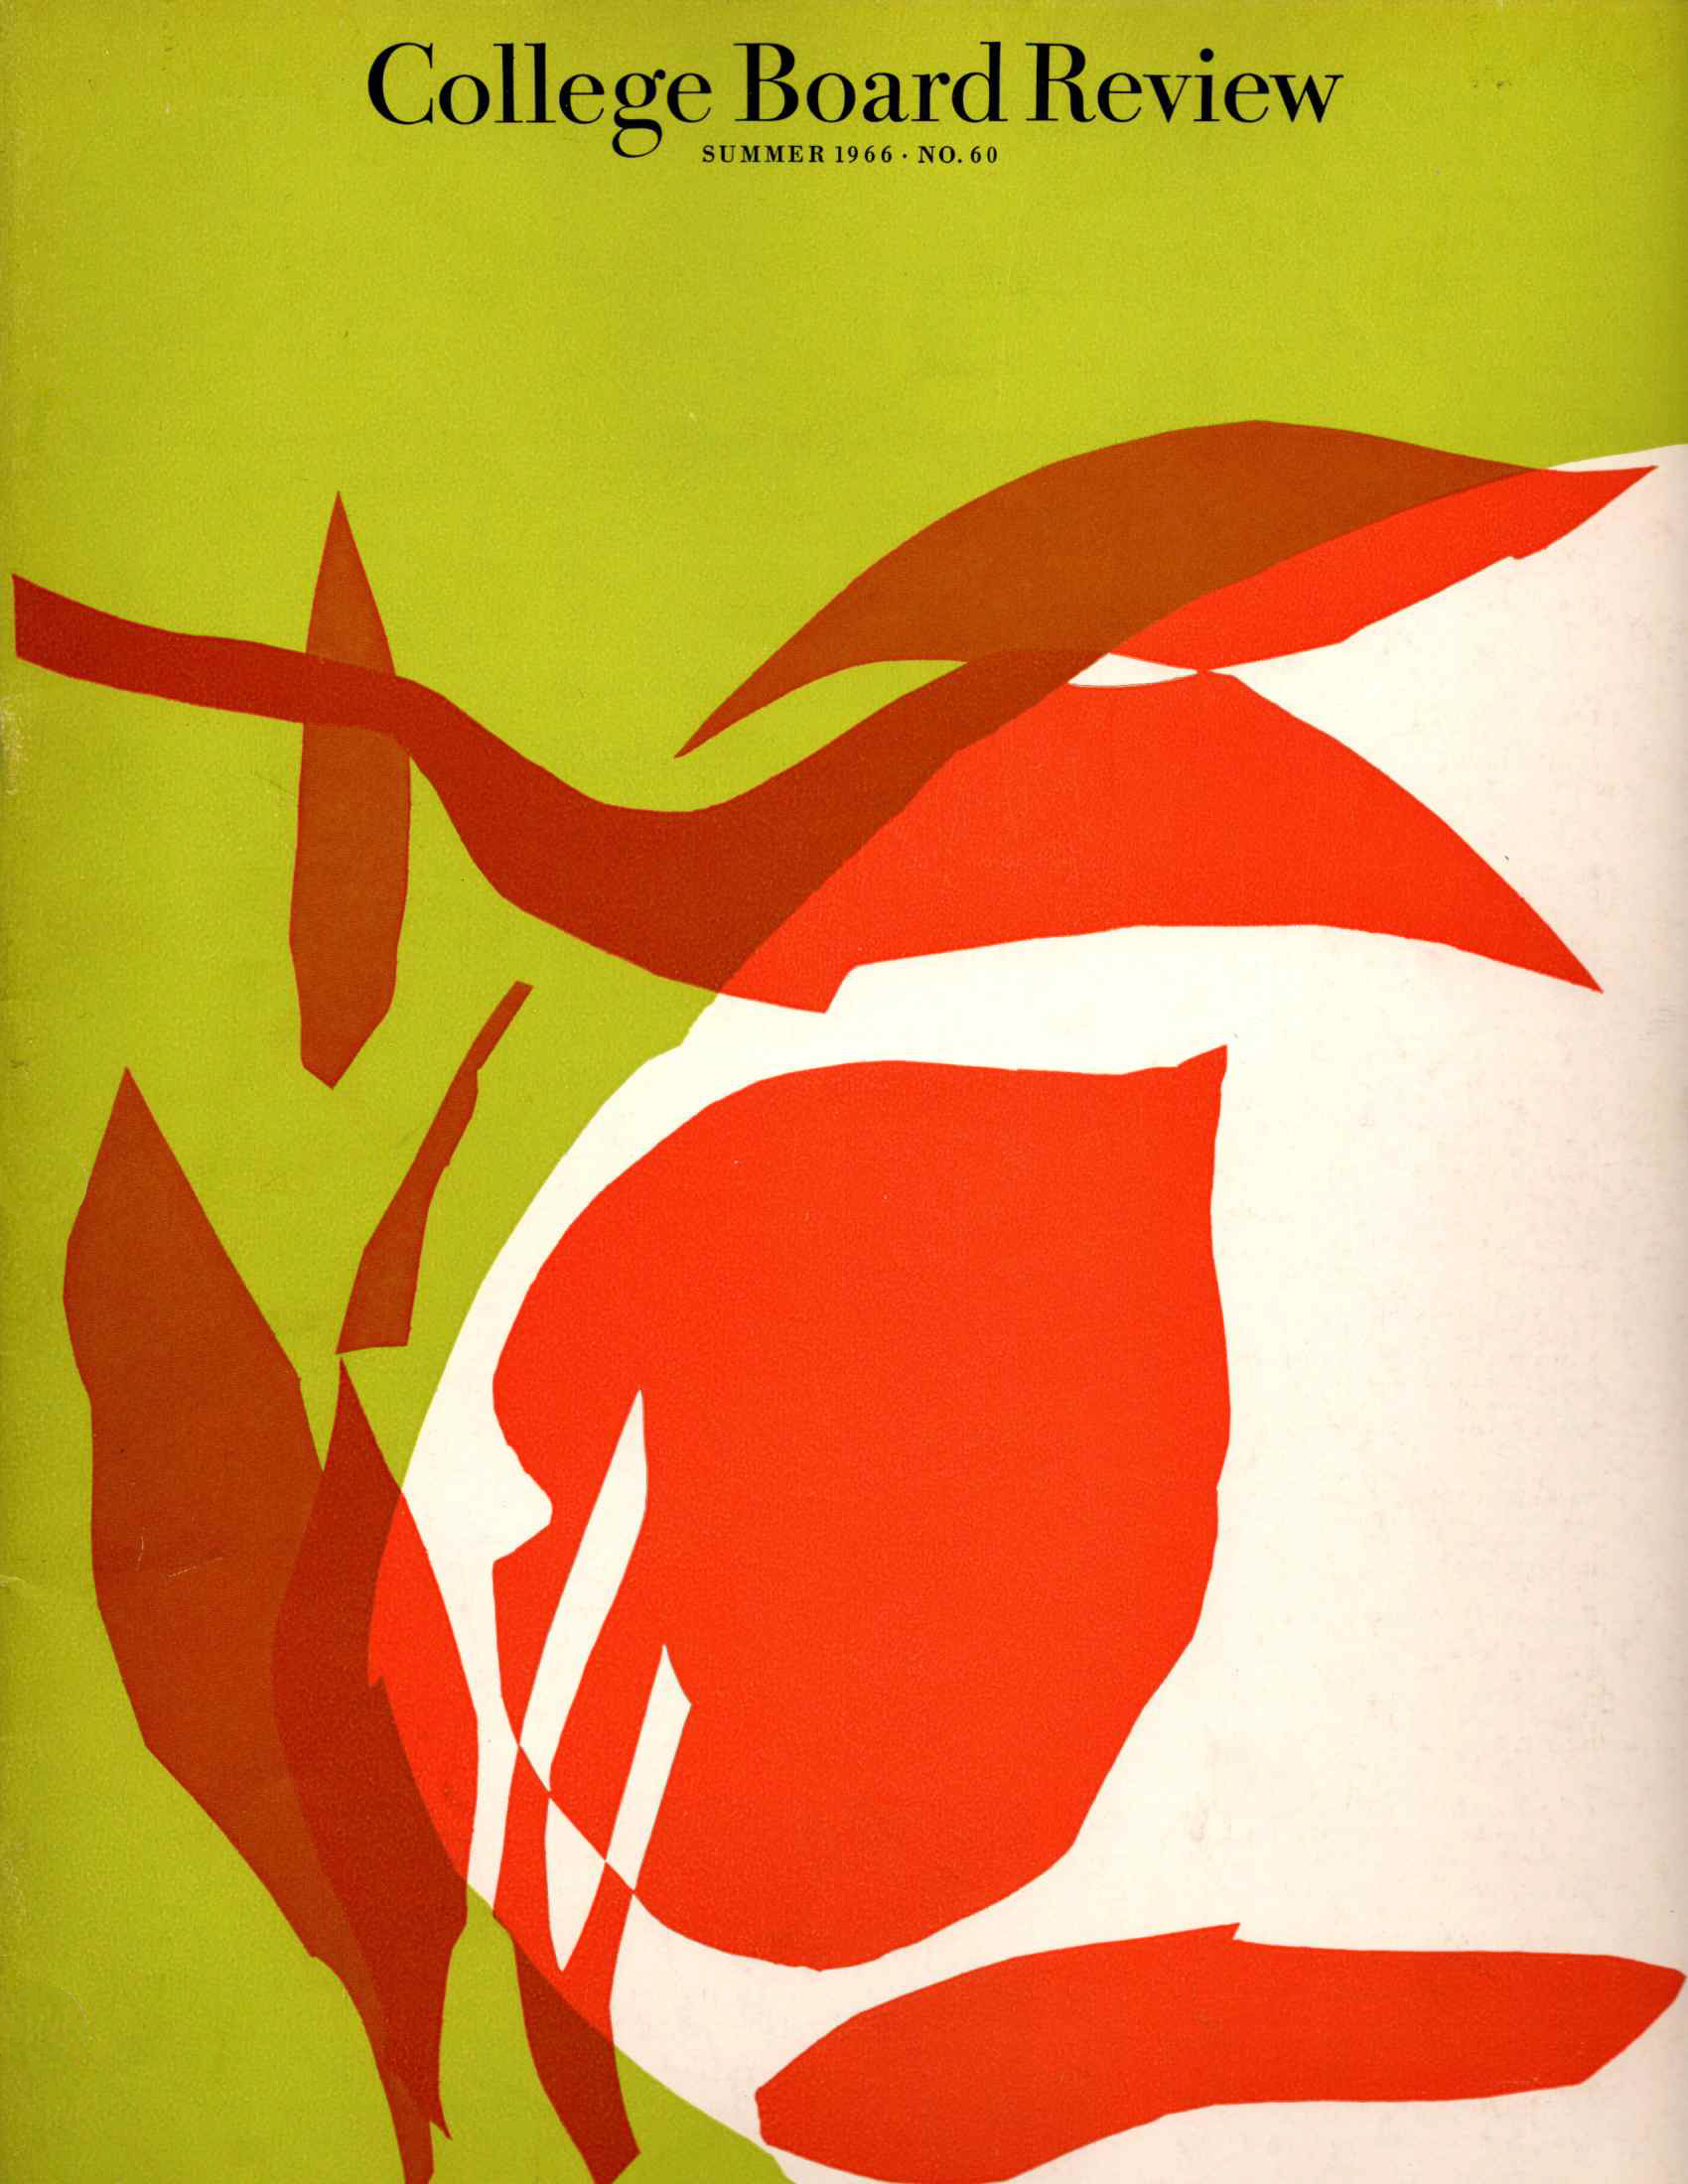 the cover of the summer 1966 issue of the college board review magazine featuring an abstract image in lime red and white